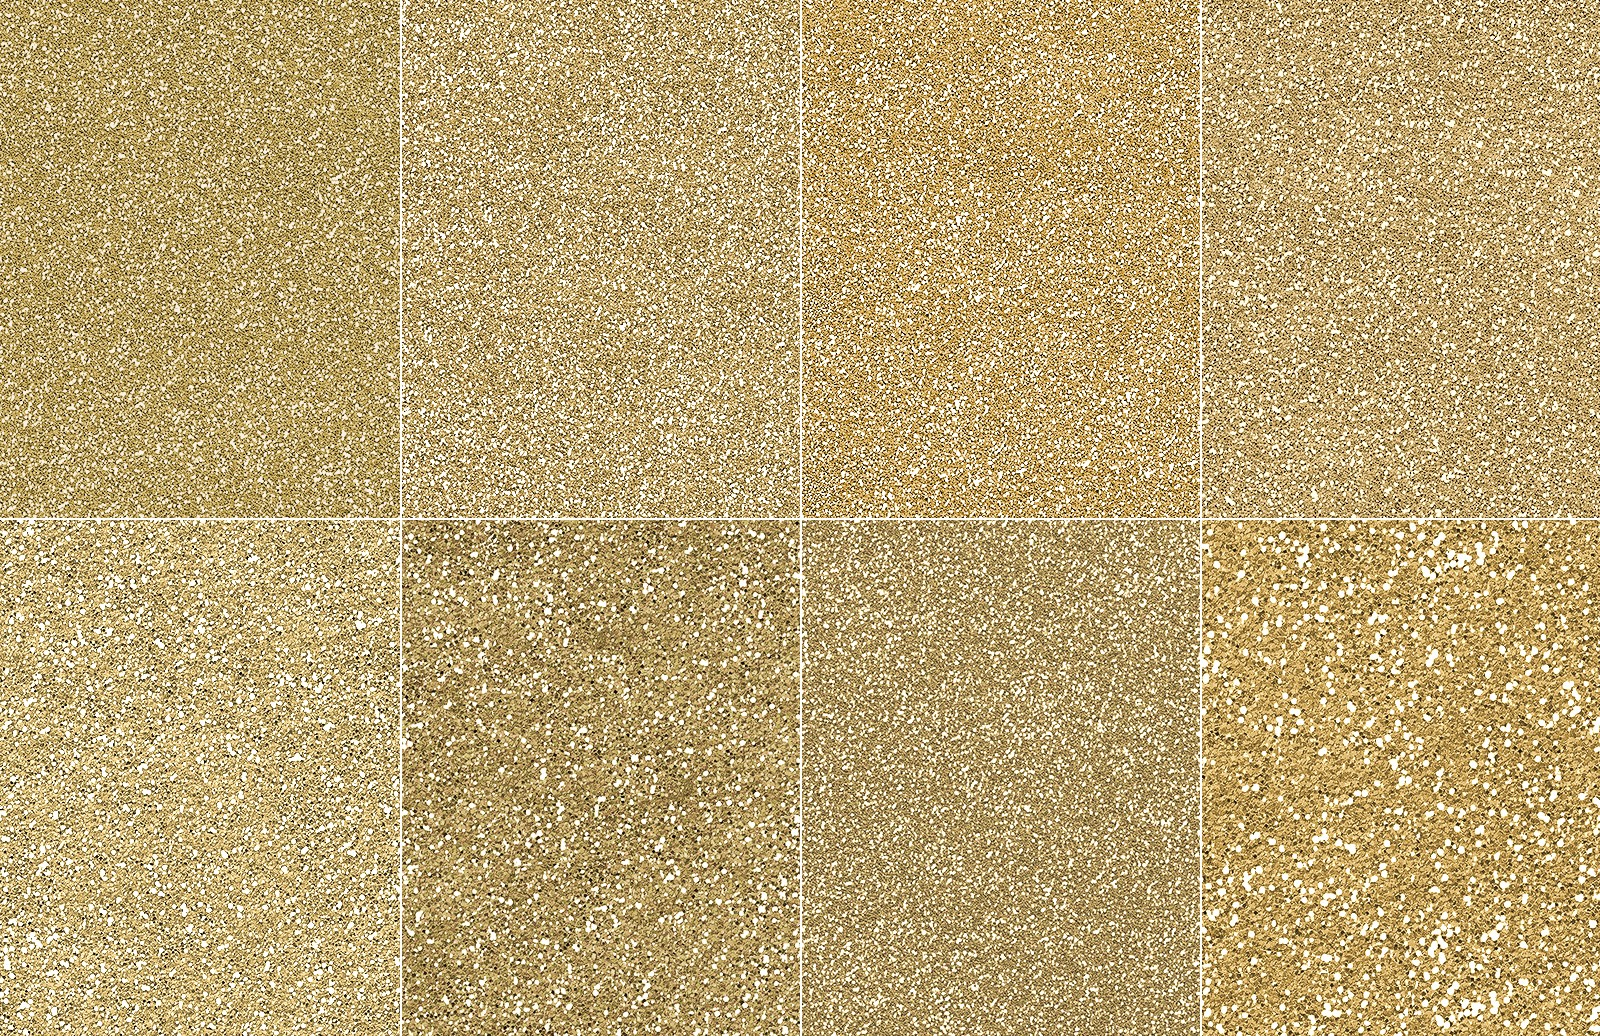 Large Seamless  Glitter  Textures  Preview 2